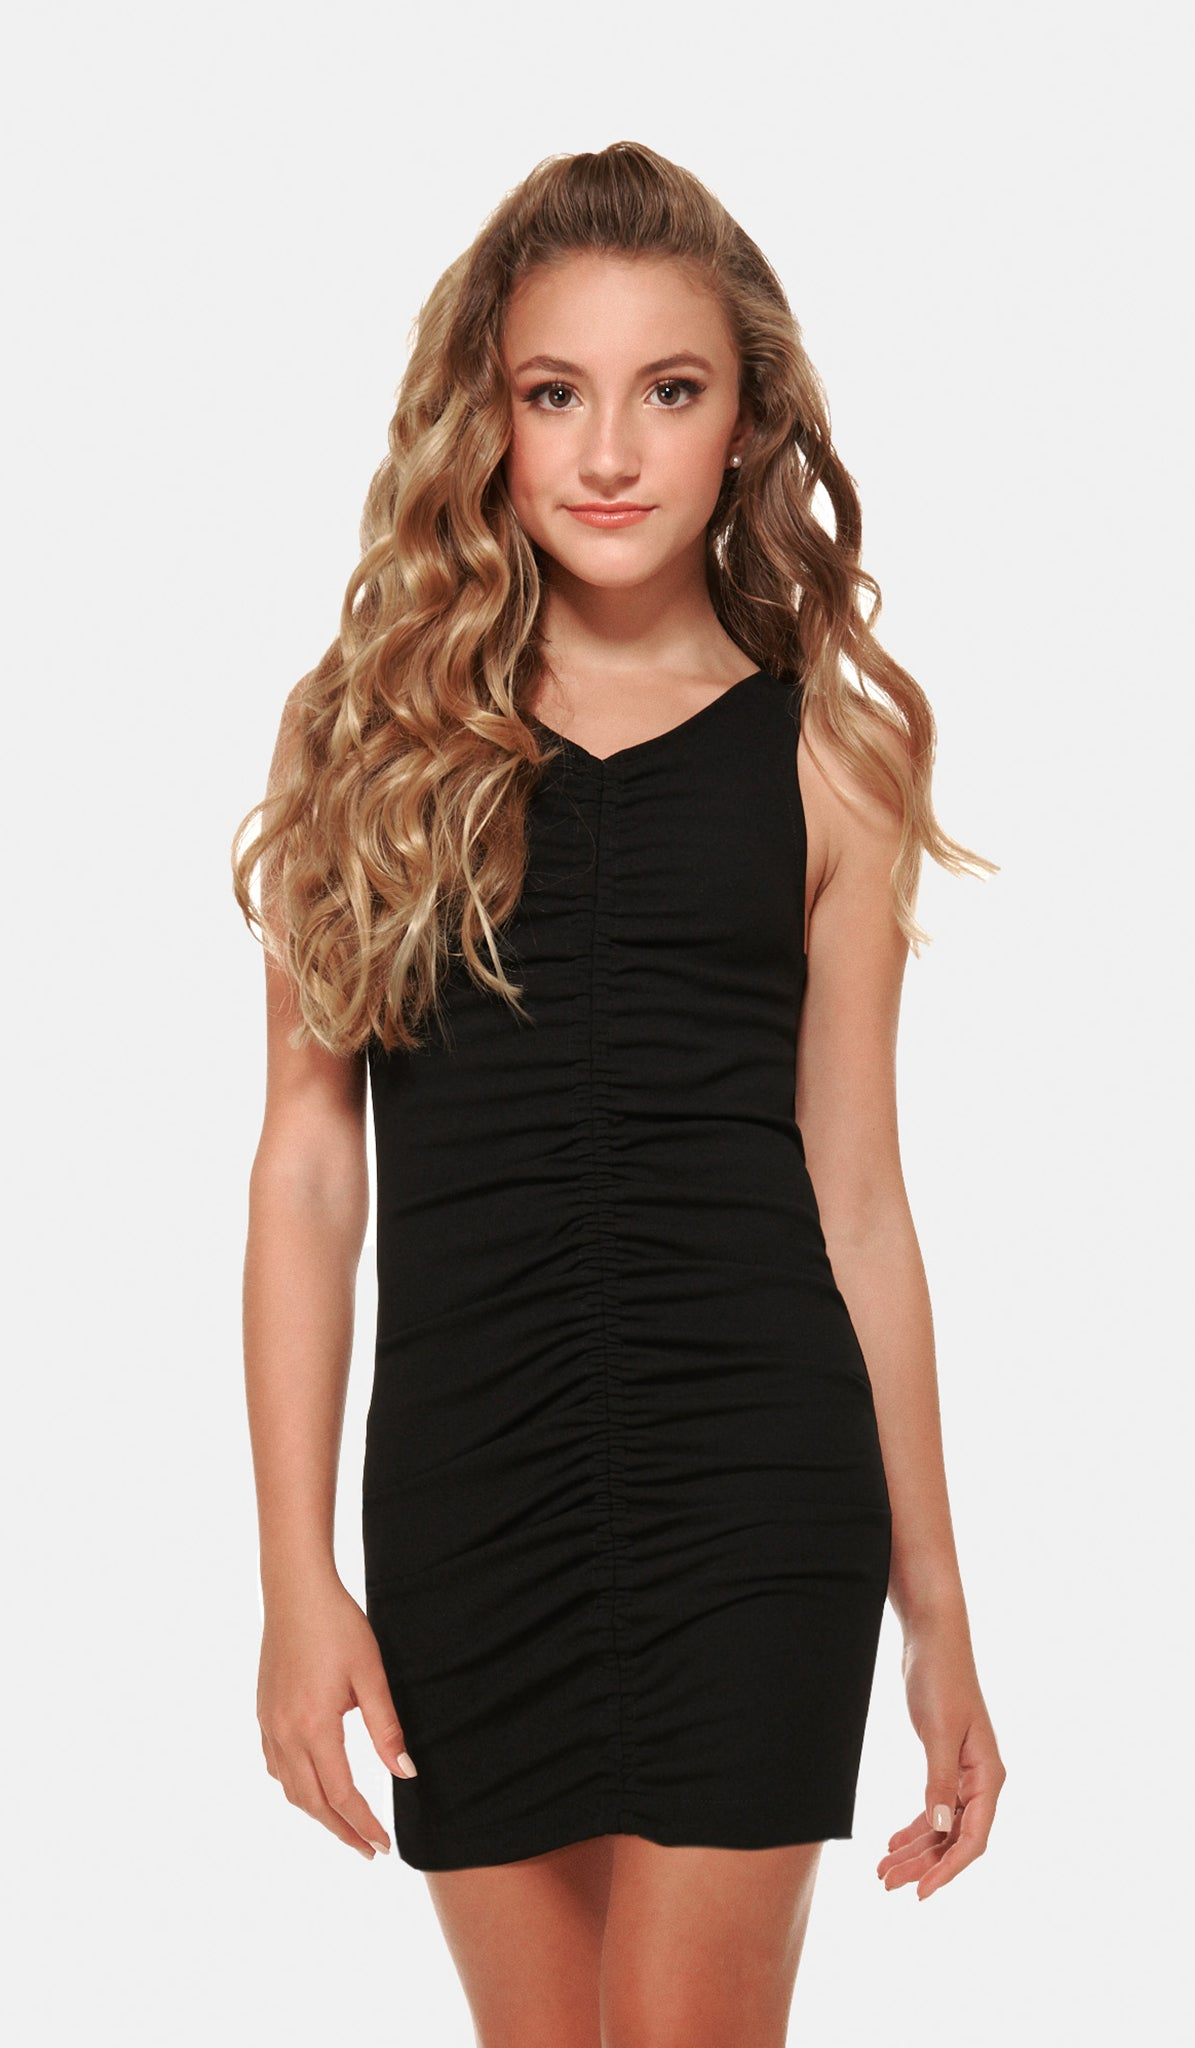 THE DEB DRESS (JUNIORS) - Sallymiller.com - [variant title] - | Event & Party Dresses for Tween Girls & Juniors | Weddings Dresses, Bat Mitzvah Dresses, Sweet Sixteen Dresses, Graduation Dresses, Birthday Party Dresses, Bar Mitzvah Dresses, Cotillion Dresses